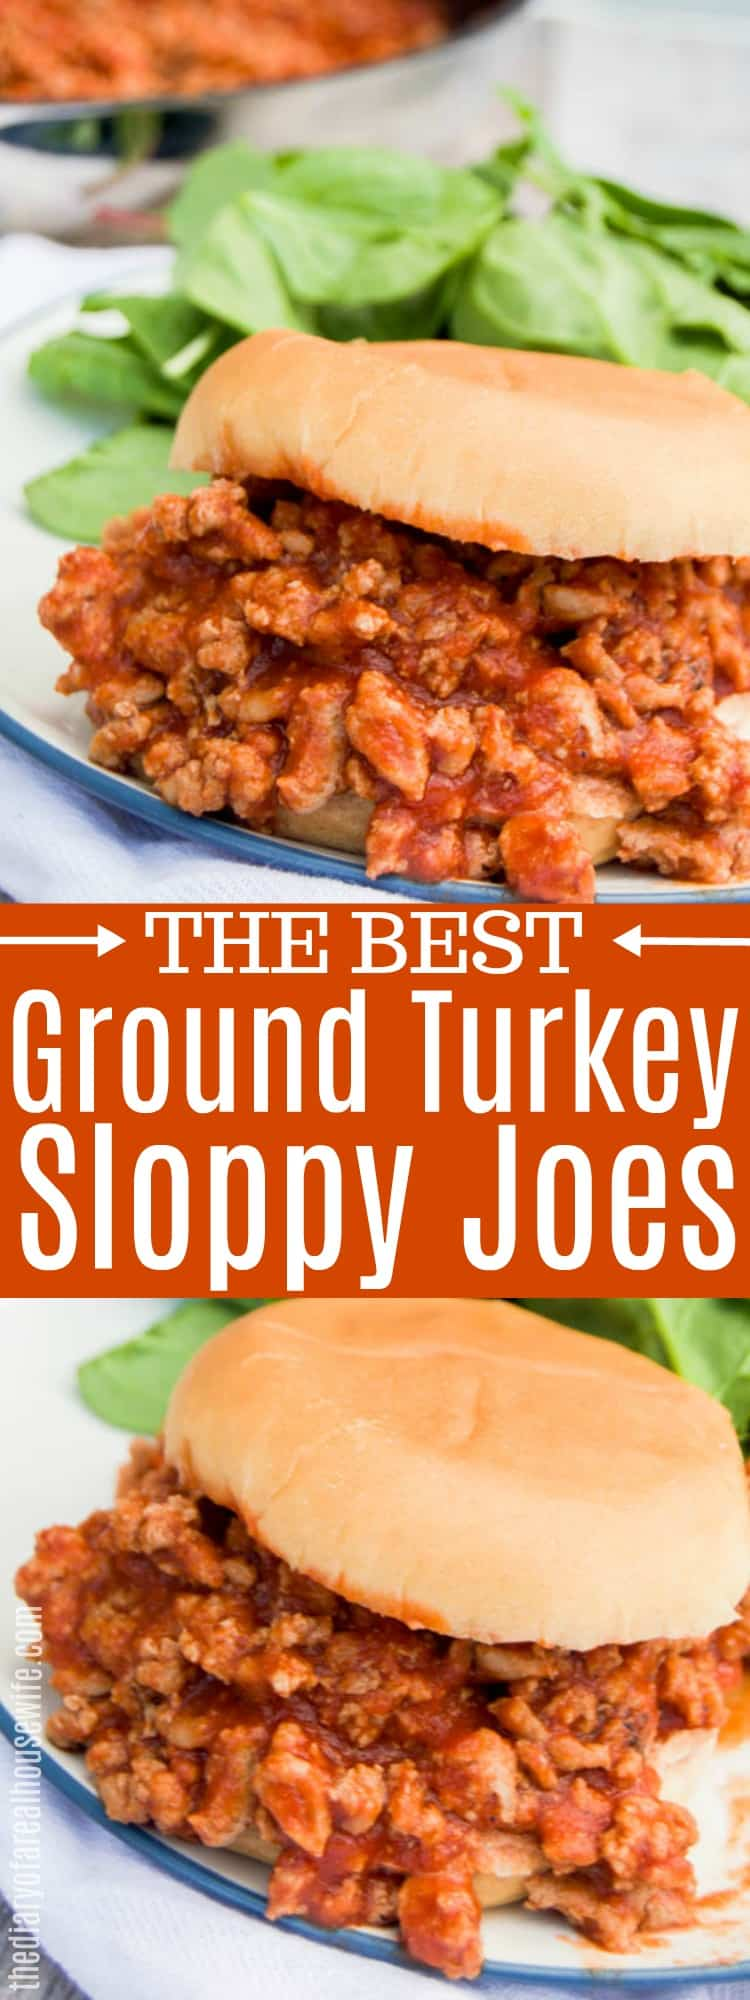 Ground Turkey Sloppy Joes